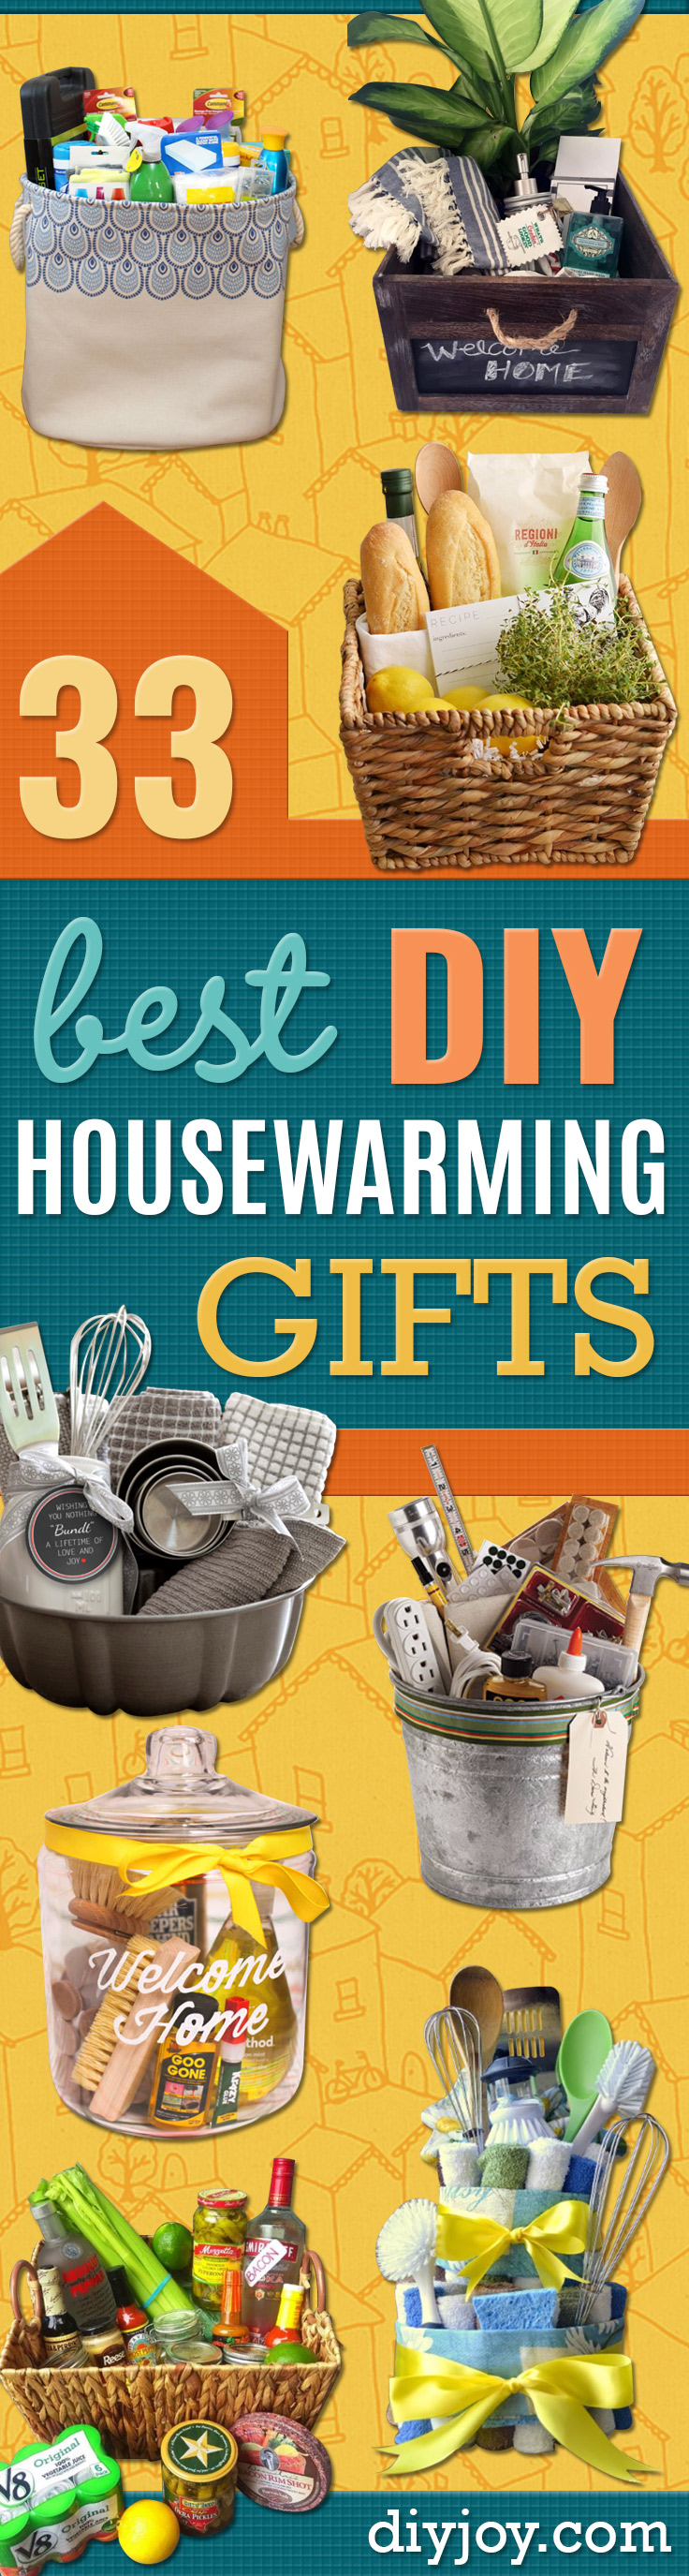 Housewarming Gifts For Young Couples 33 Best Diy Housewarming Gifts